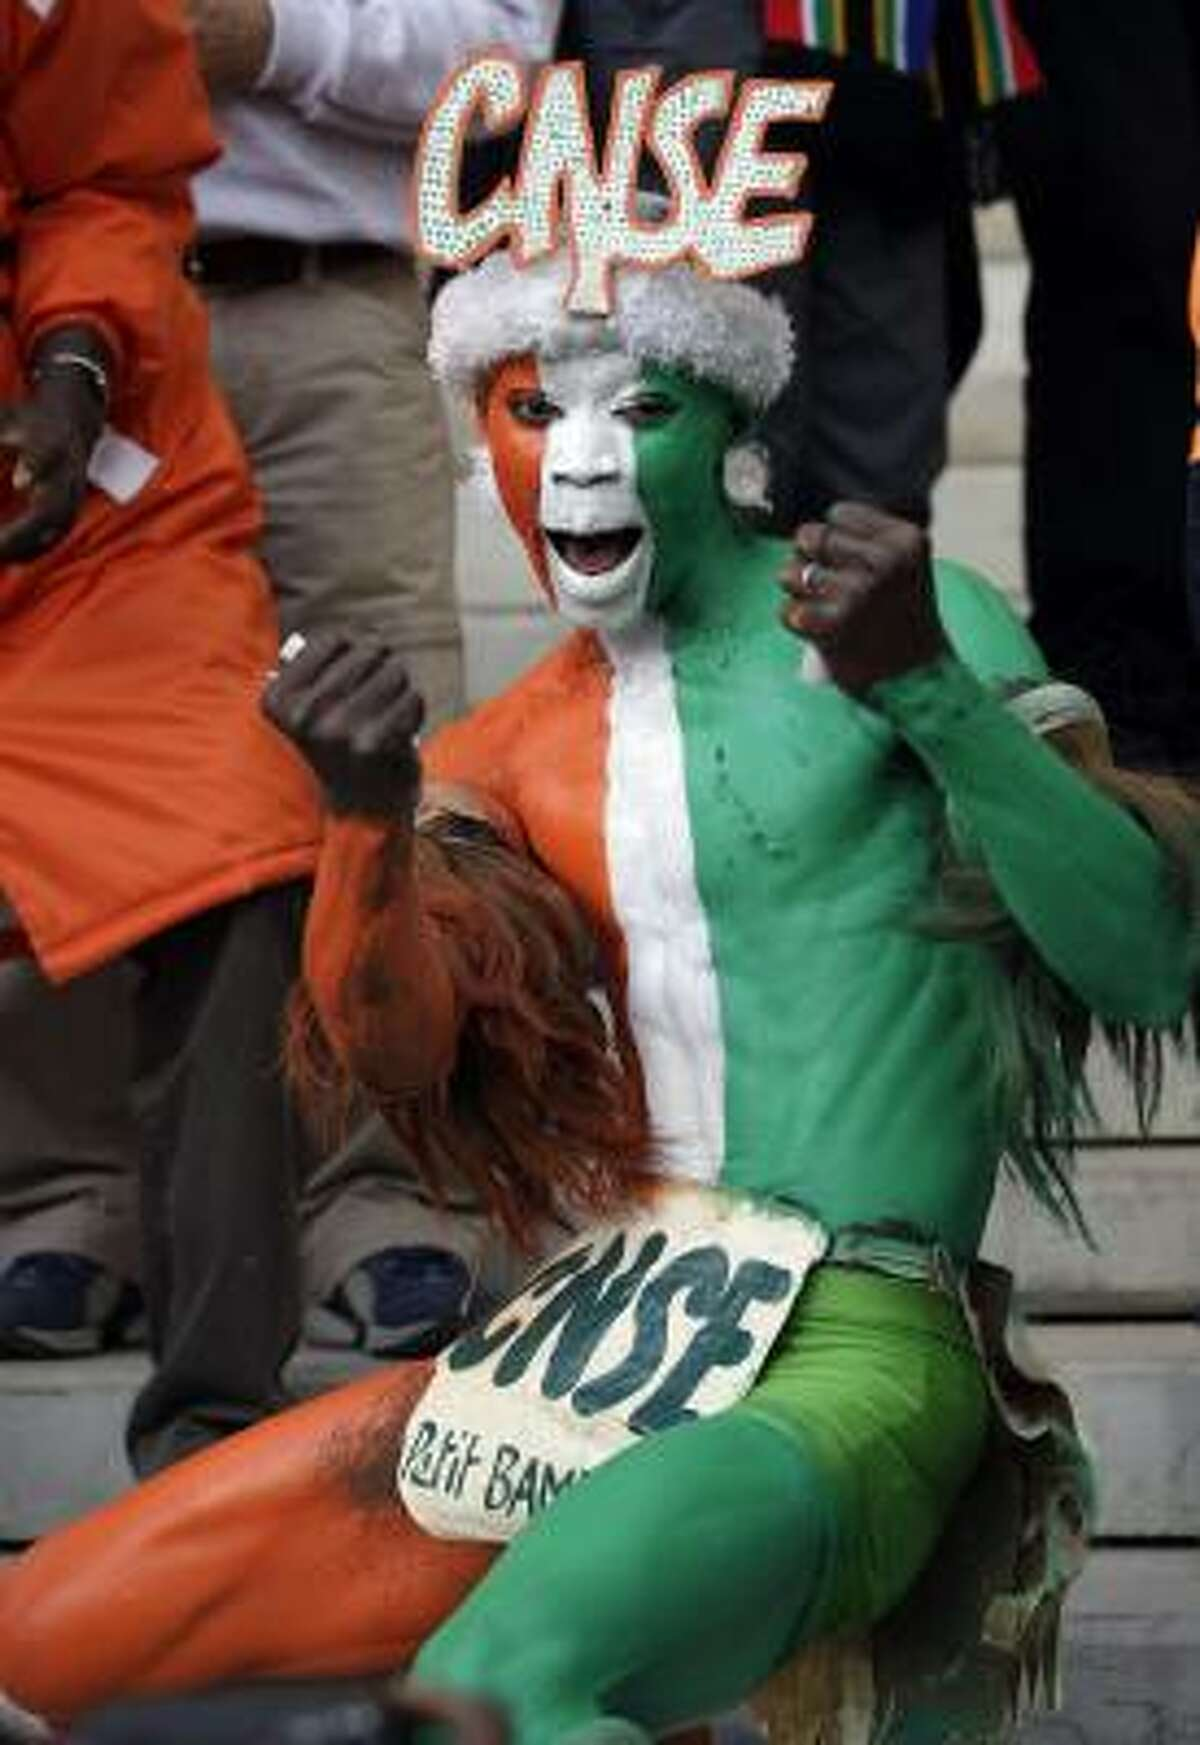 A fan of the Ivory Coast is pumped up for the match against North Korea.